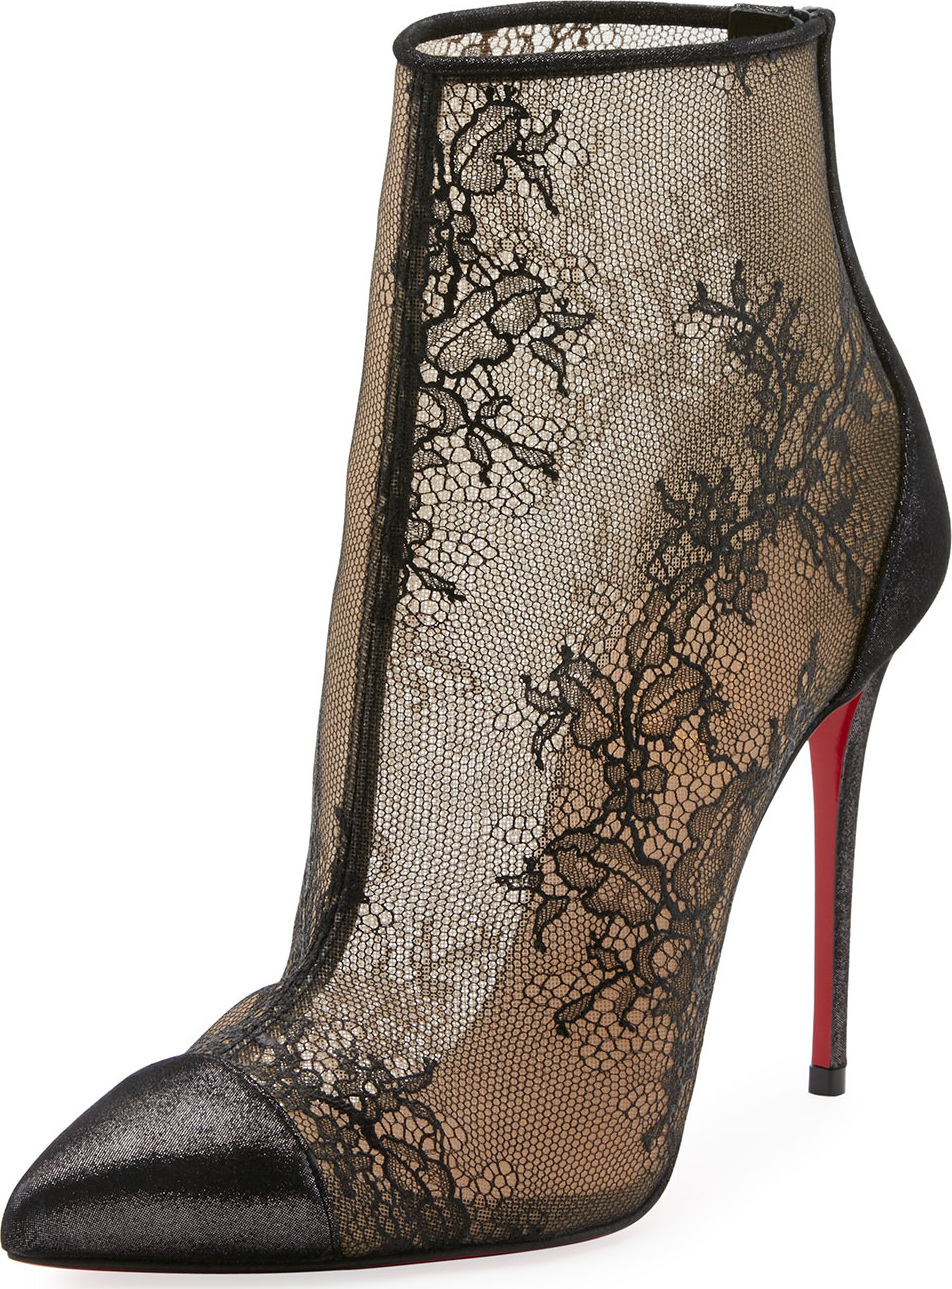 promo code 24120 10a7b Christian Louboutin Gipsybootie Lace Red Sole Ankle Boot | mkt